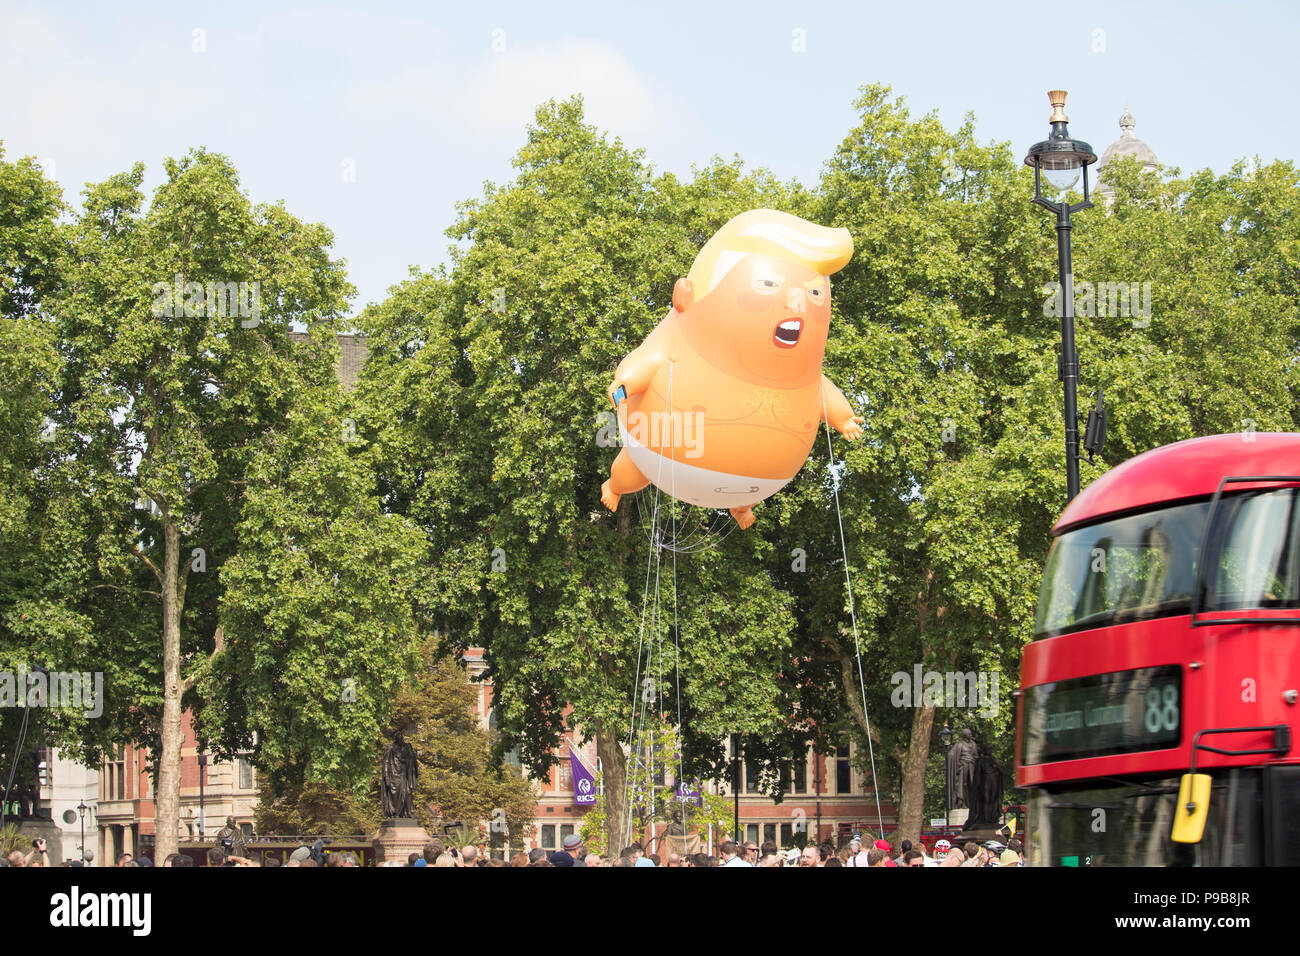 STOP TRUMP' protests in Parliament Square Gardens-  'Trump Baby' giant inflatable rises up above the crowds as Red London bus travels by.London, UK. - Stock Image